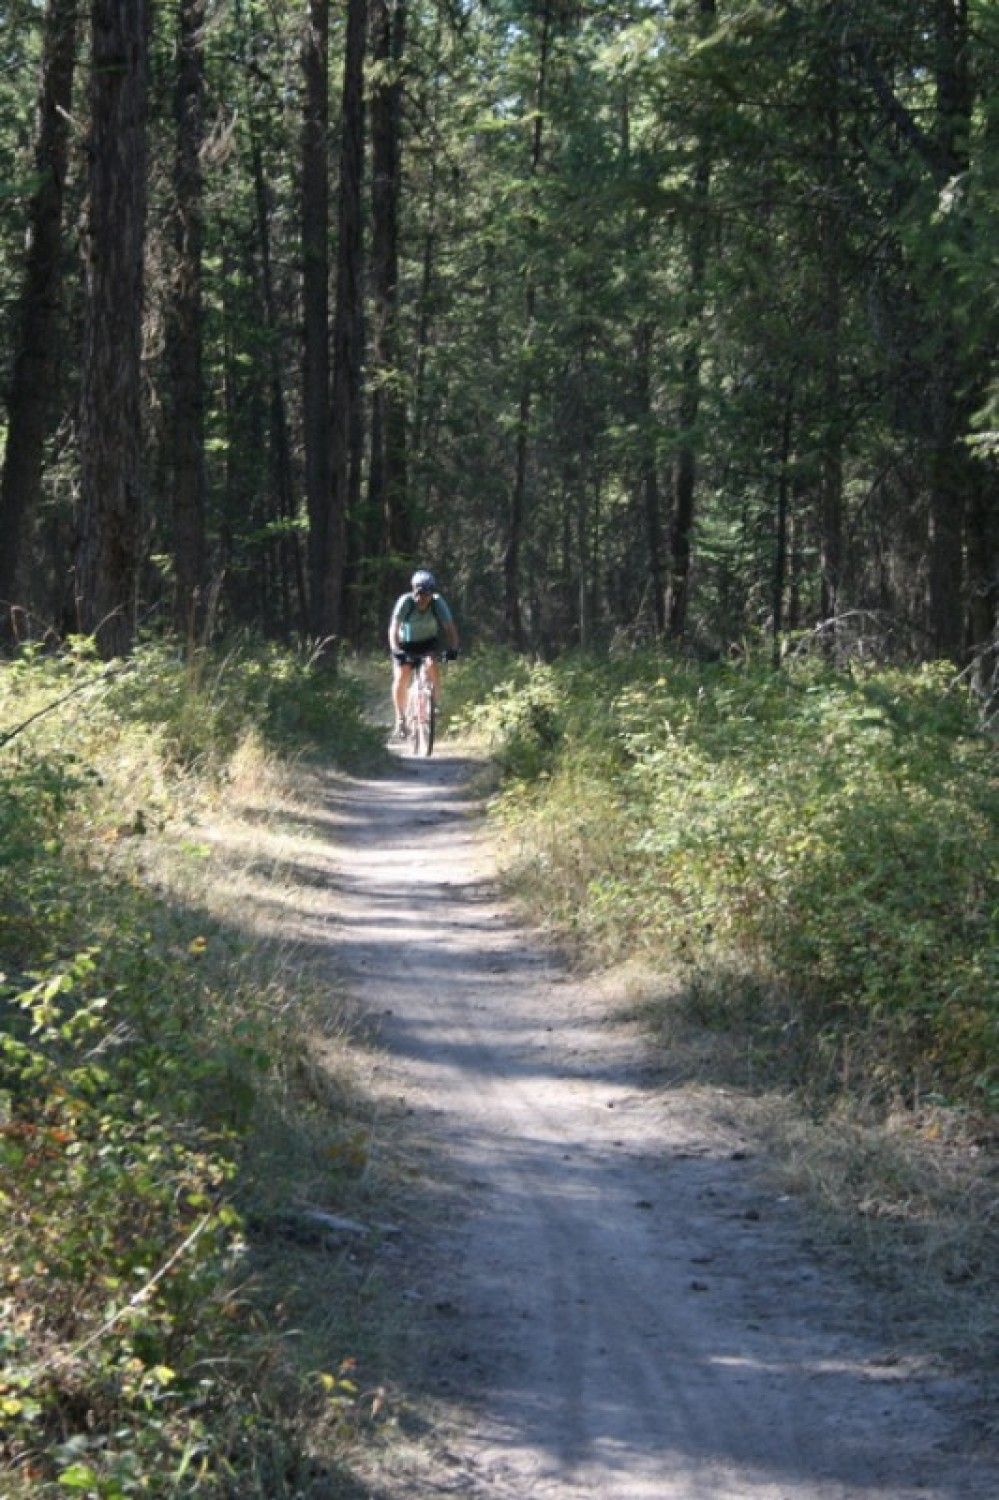 Riding the single track trails of the Pigs Farms area. – John Frandsen